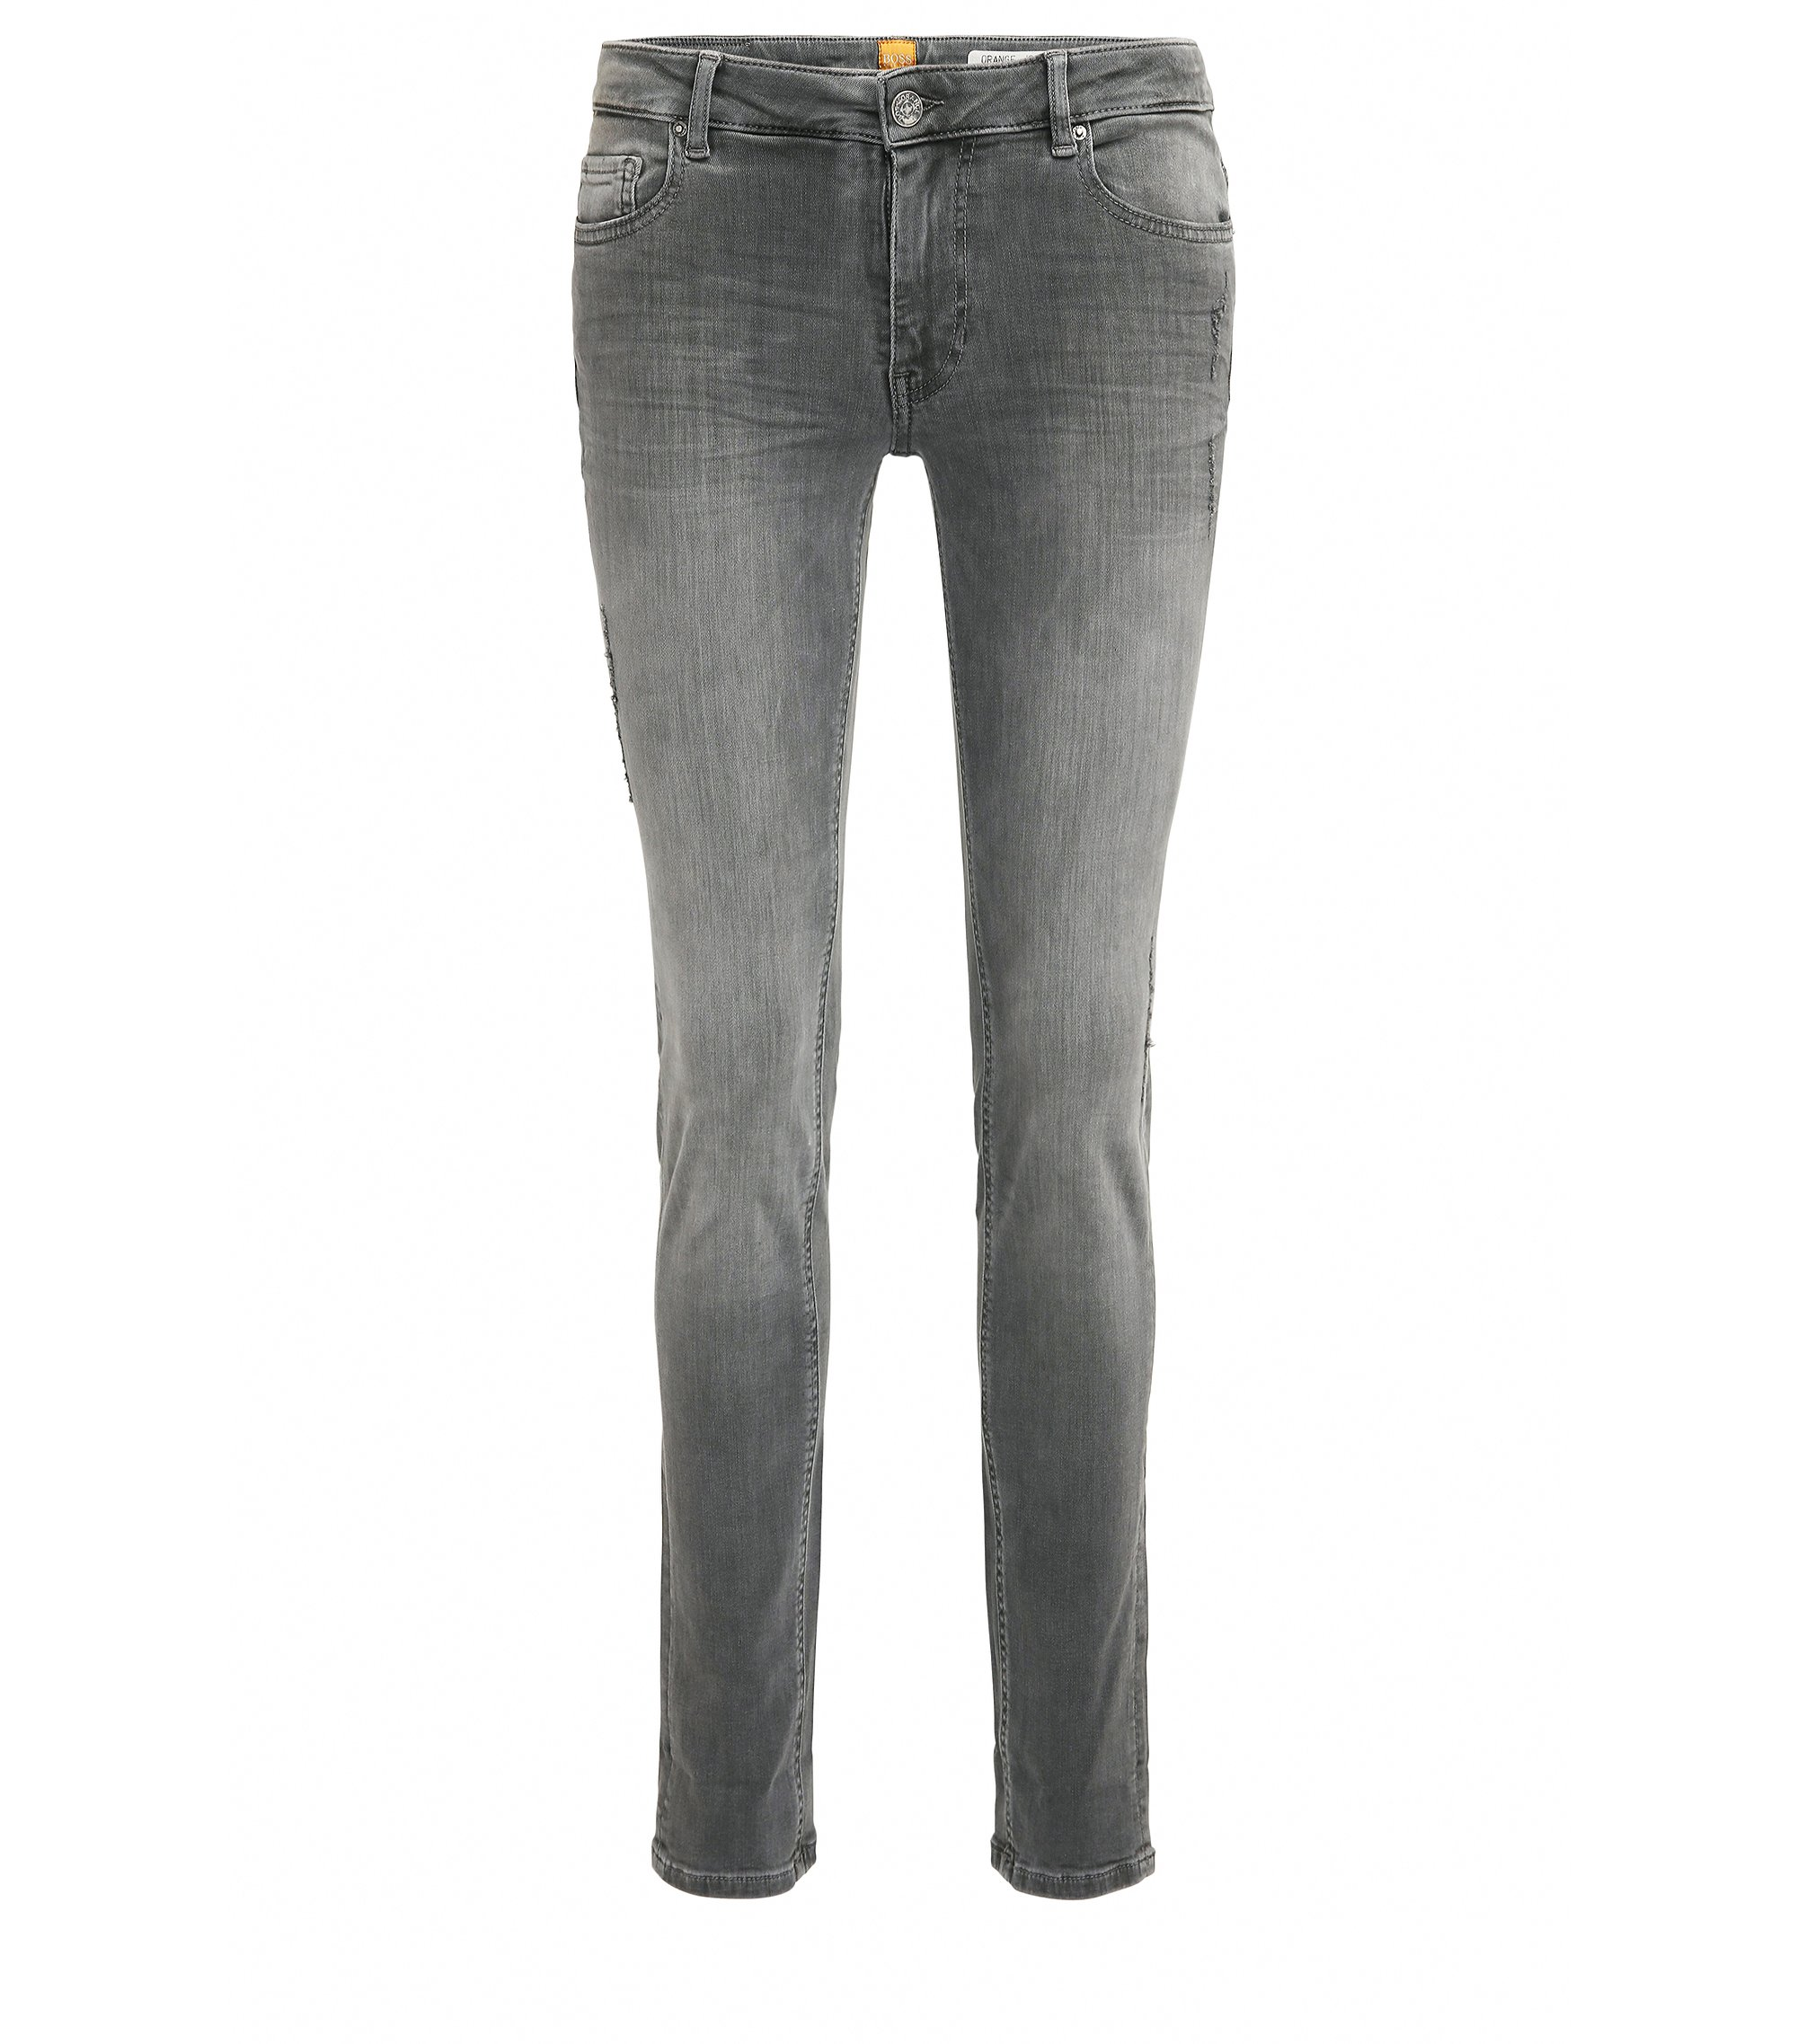 Slim-Fit Jeans aus gewaschenem Stretch-Denim in Used-Optik, Dunkelgrau